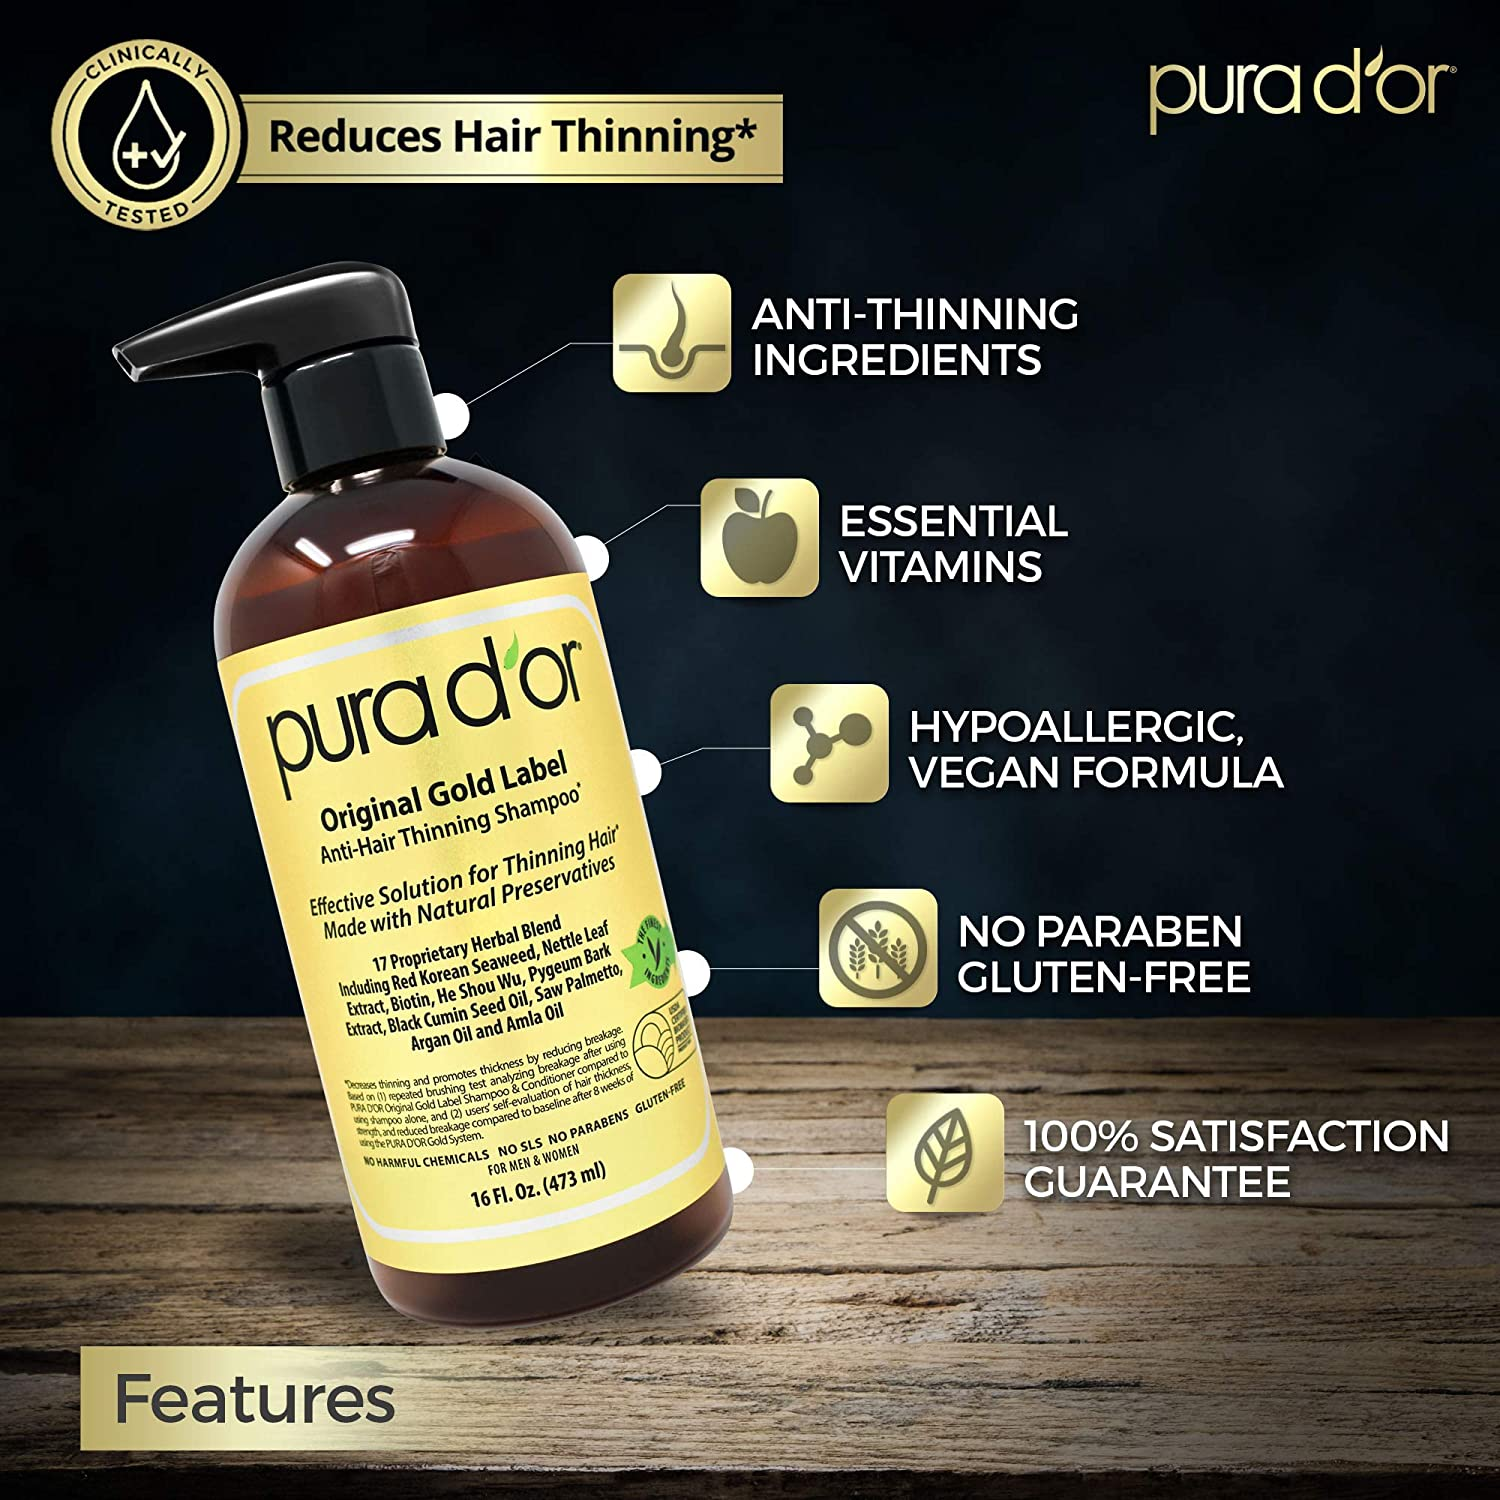 PURA D'OR Original Gold Label Anti-Thinning Shampoo 2